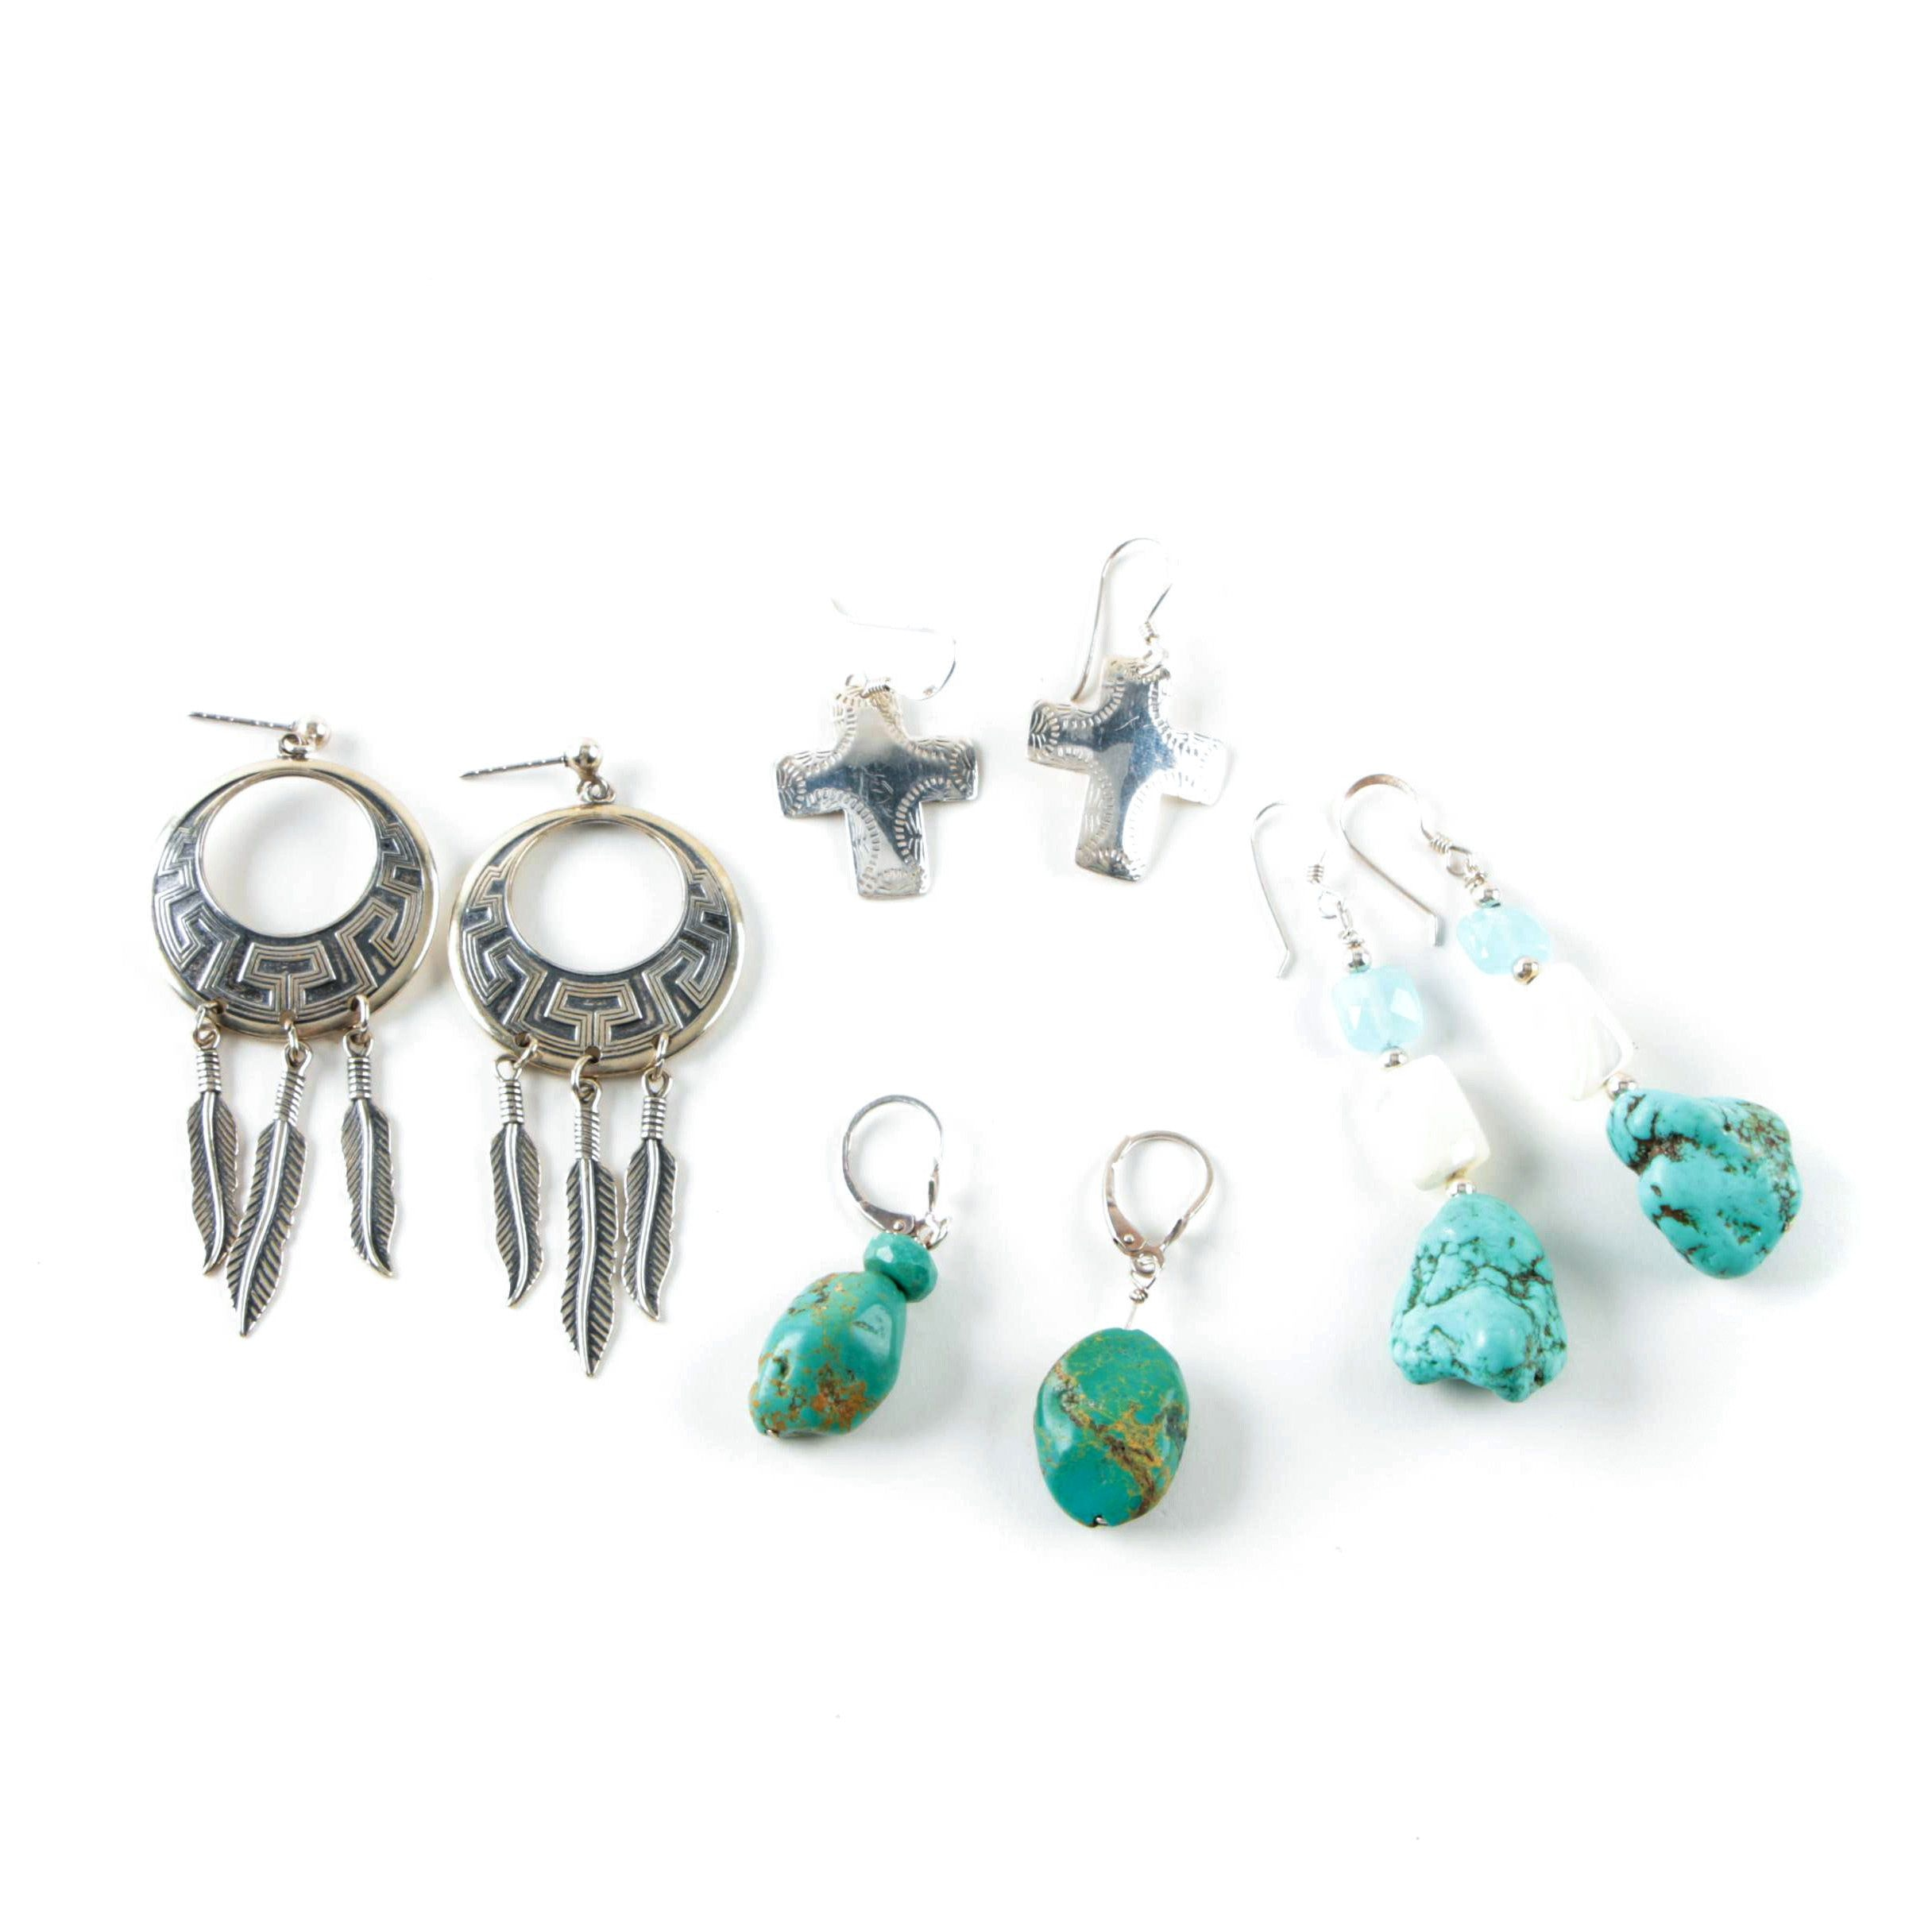 Southwest Style Sterling Silver and Gemstone Earrings